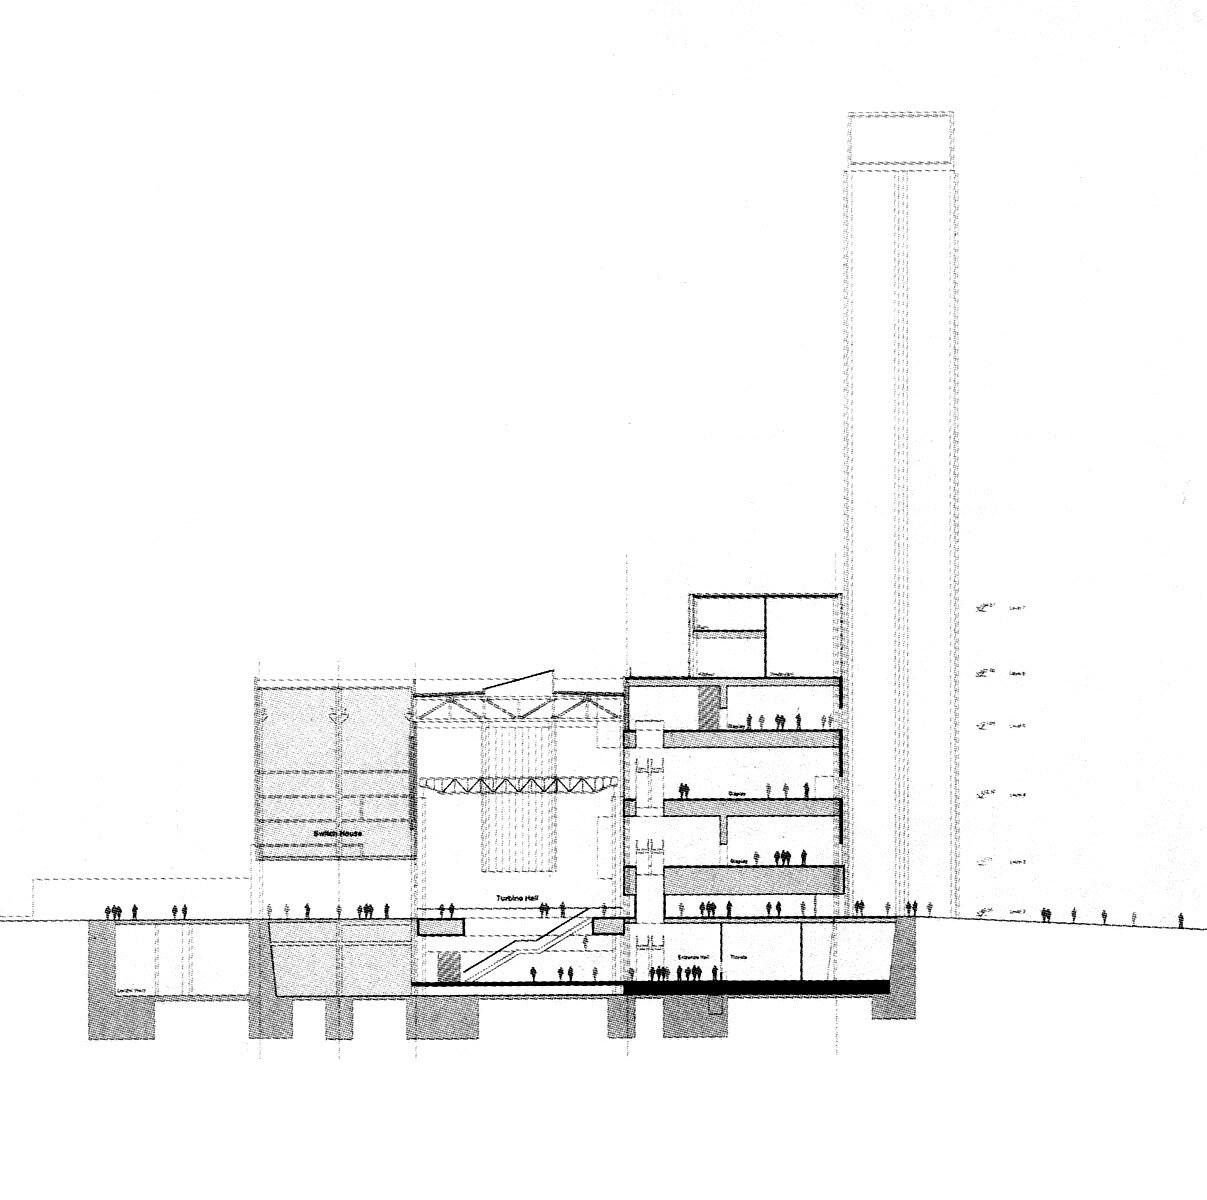 Tate_Modern_Section_through_Tower_Concours.jpg